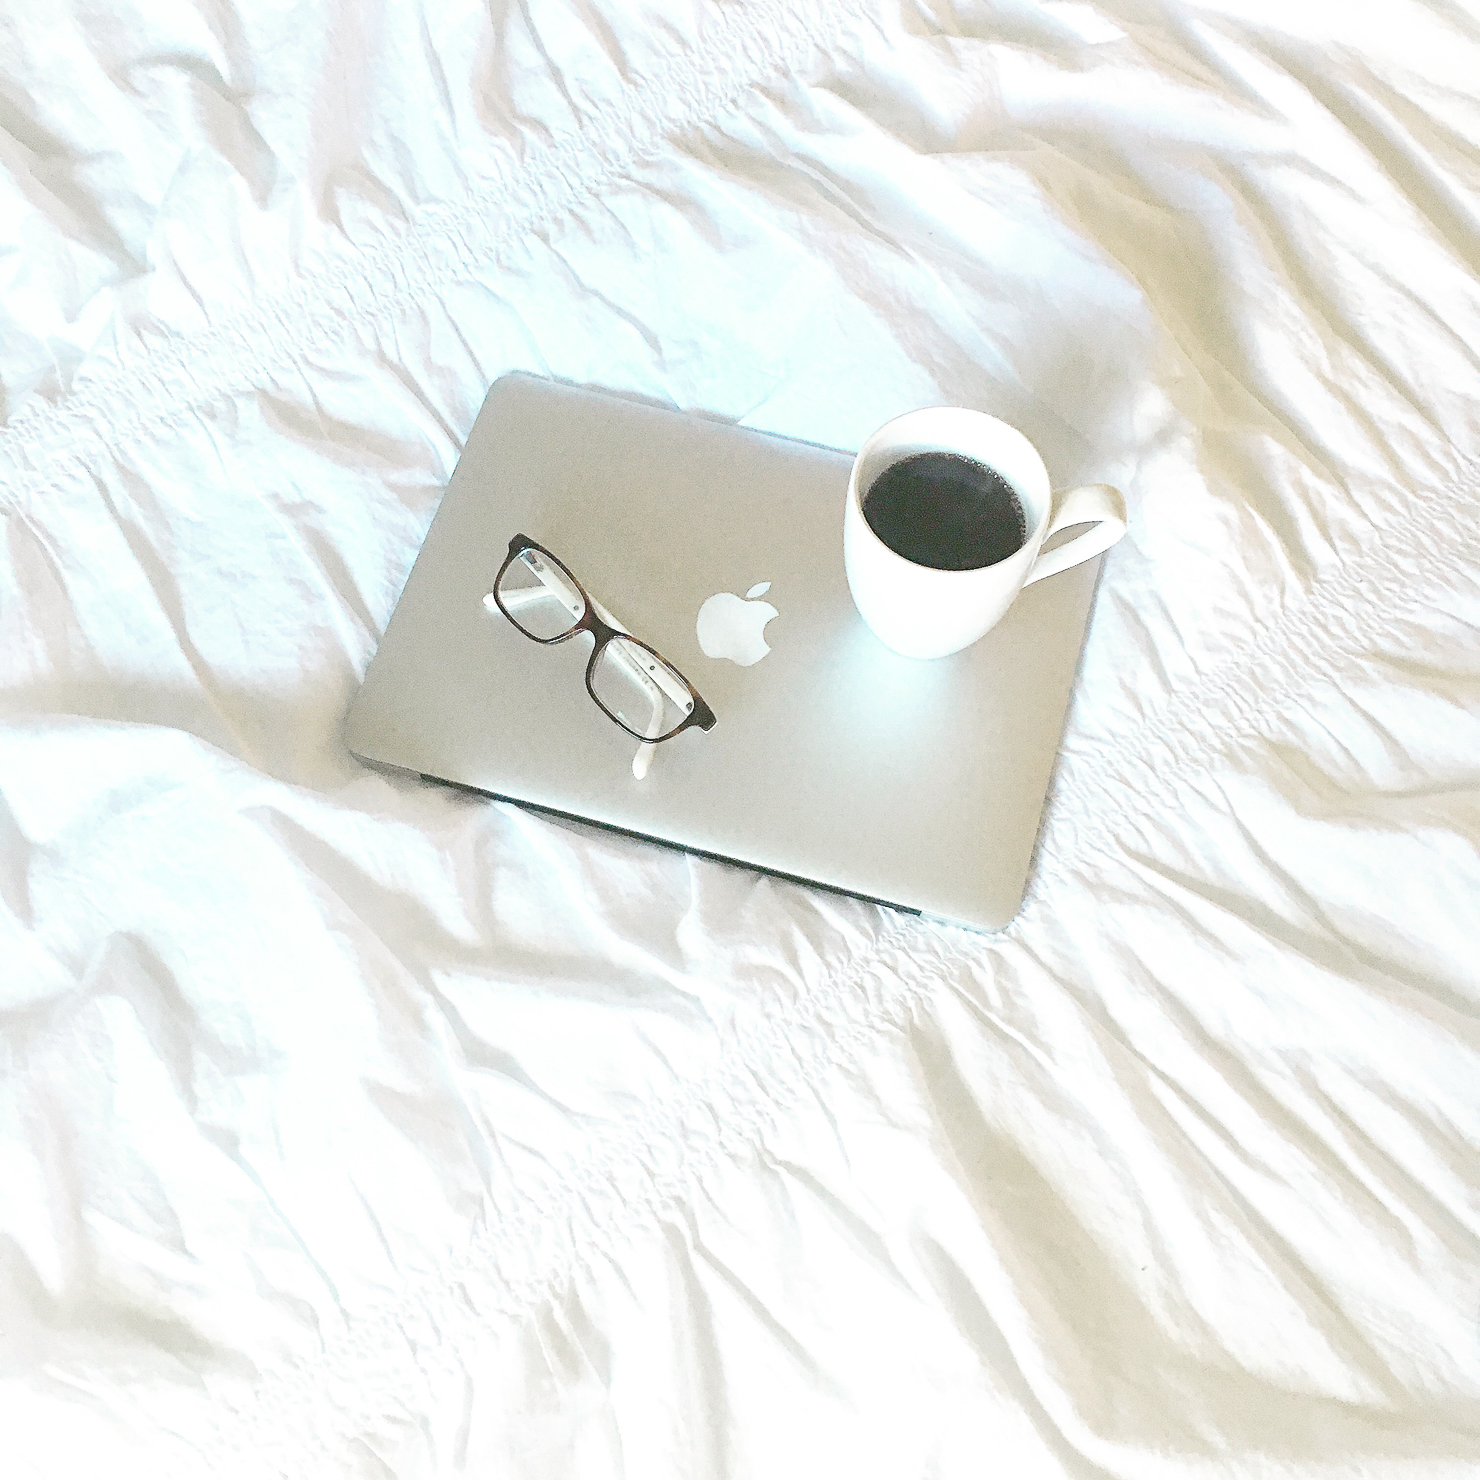 macbook-on-bed-with-coffee